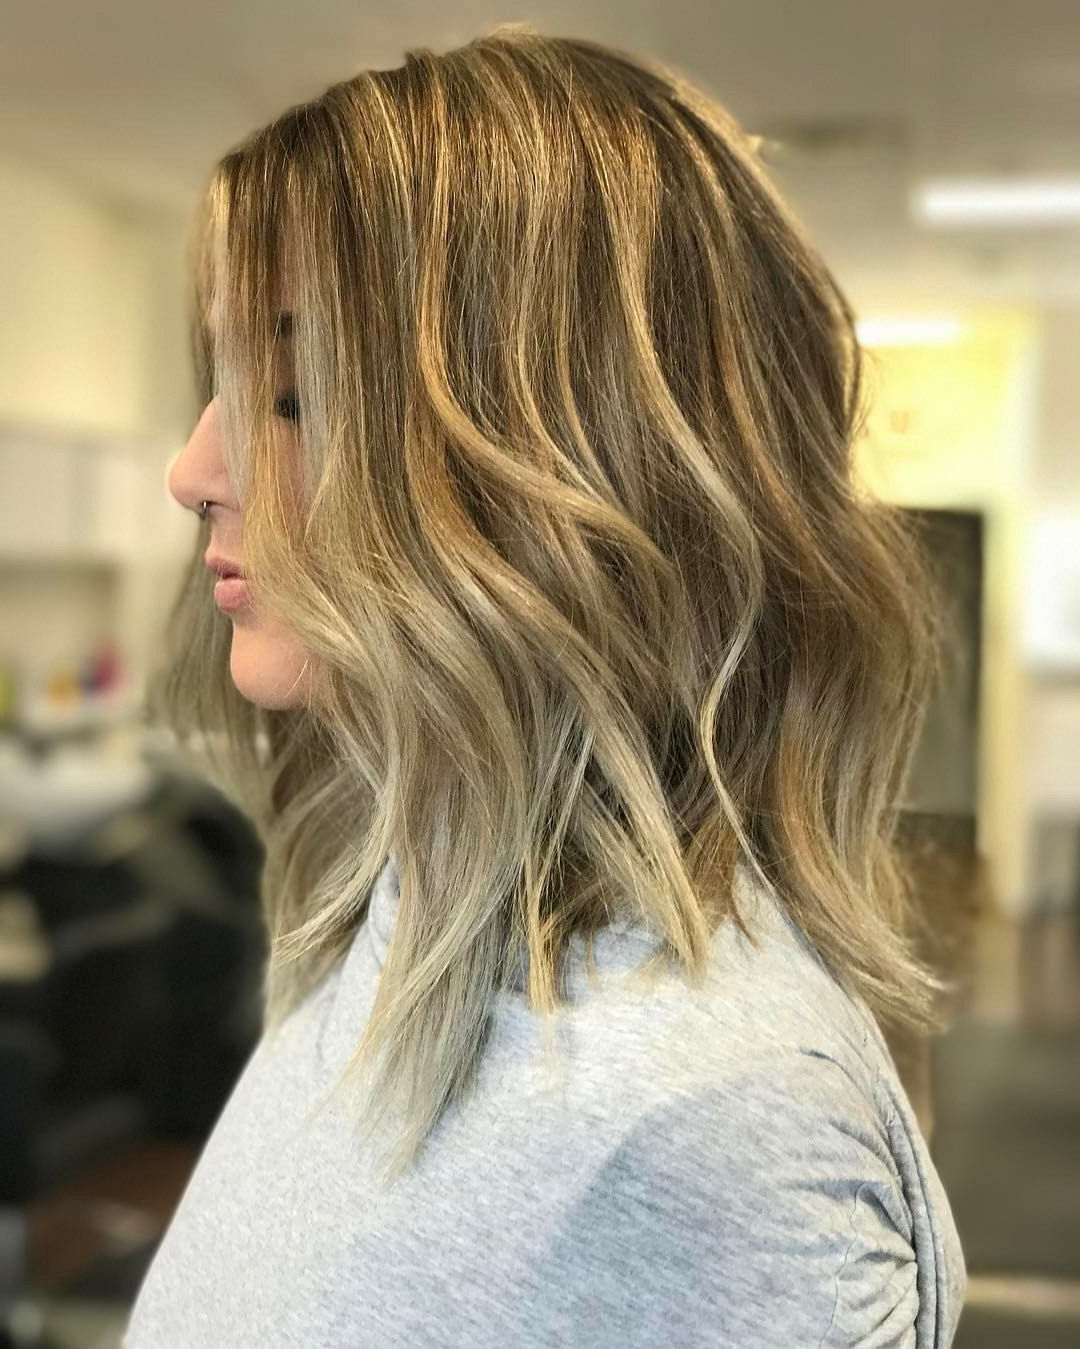 Photo Gallery Of Tousled Beach Bob Hairstyles Viewing 17 Of 20 Photos